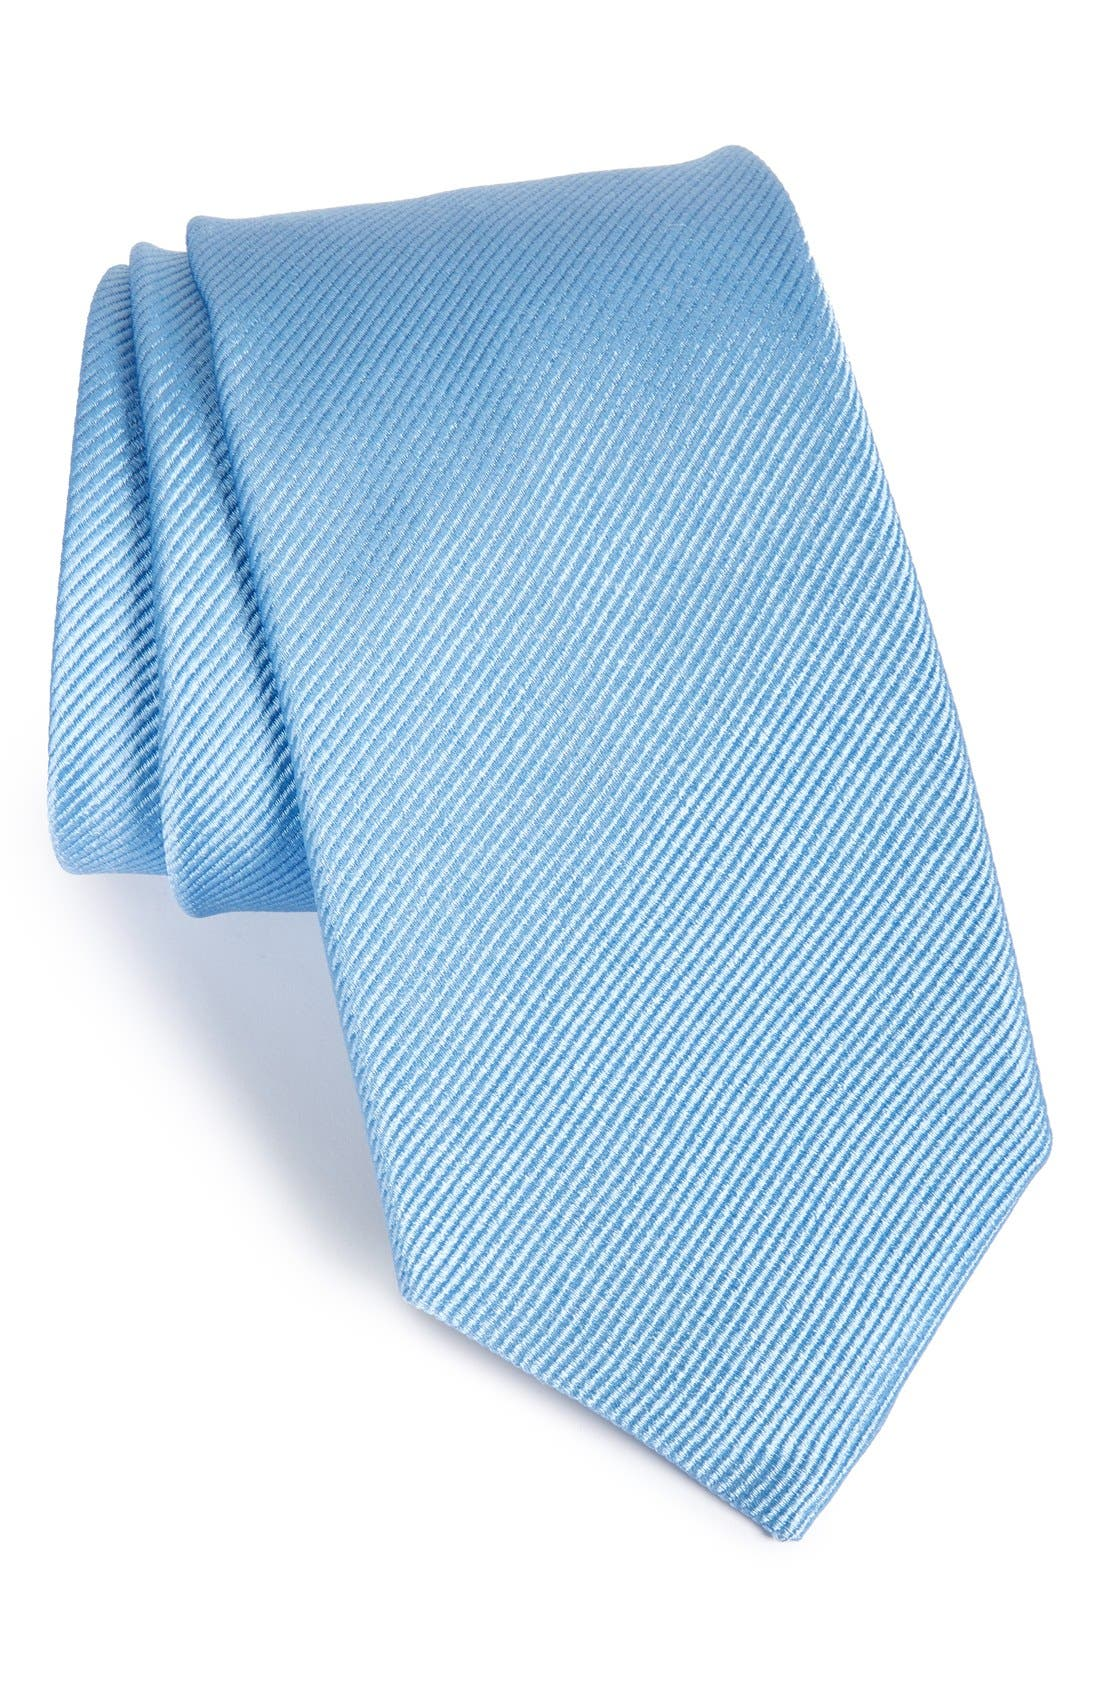 Solid Silk Tie,                         Main,                         color, MEDIUM BLUE